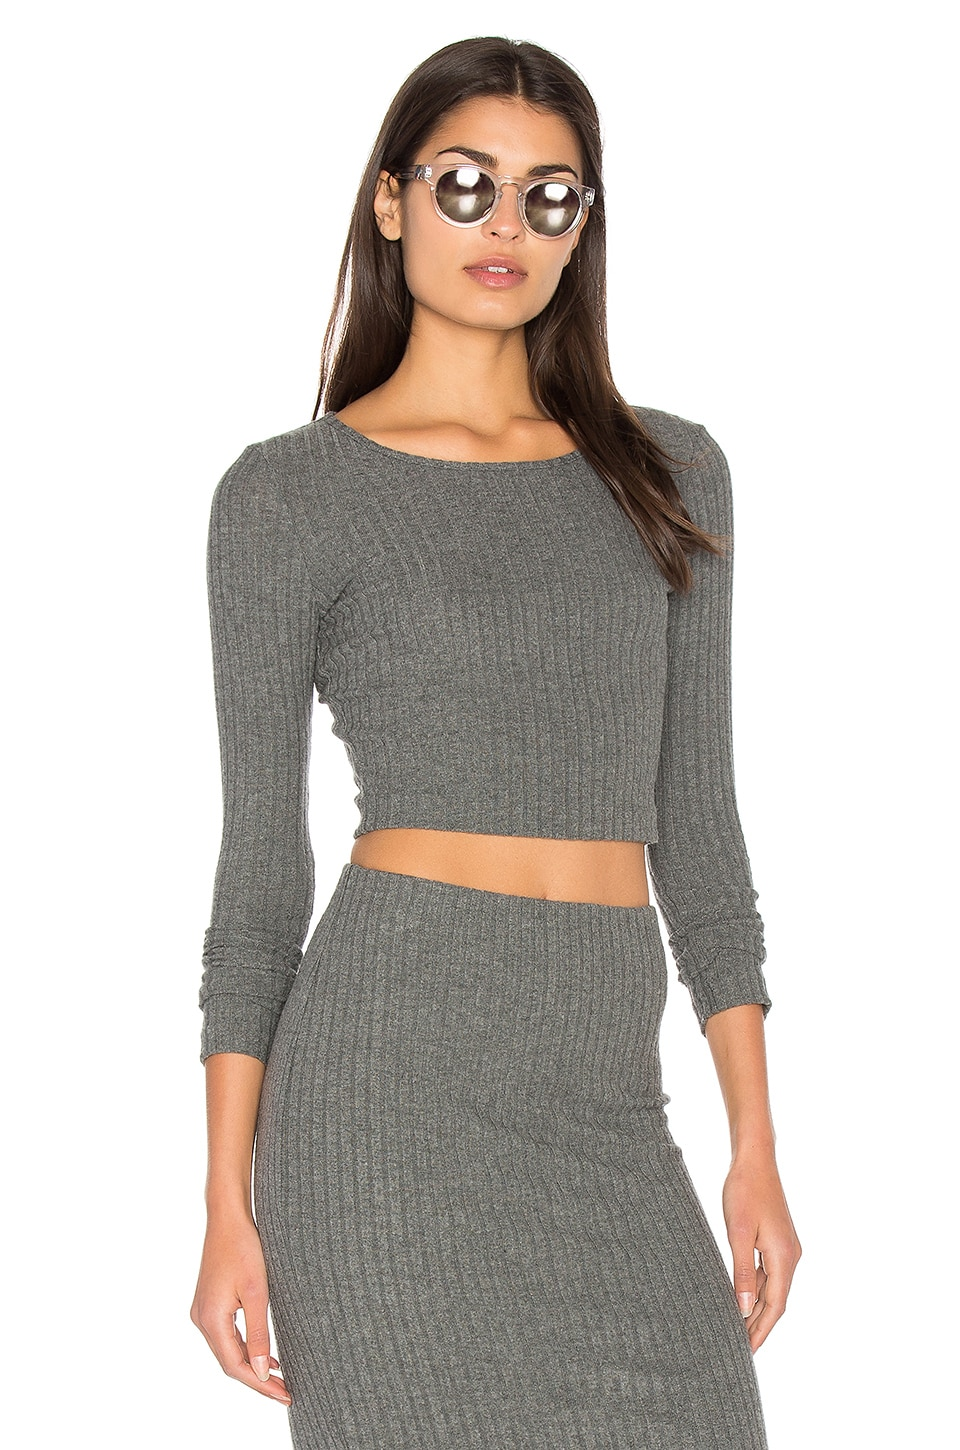 Plush Rib Long Sleeve Crop Top by Bella Luxx